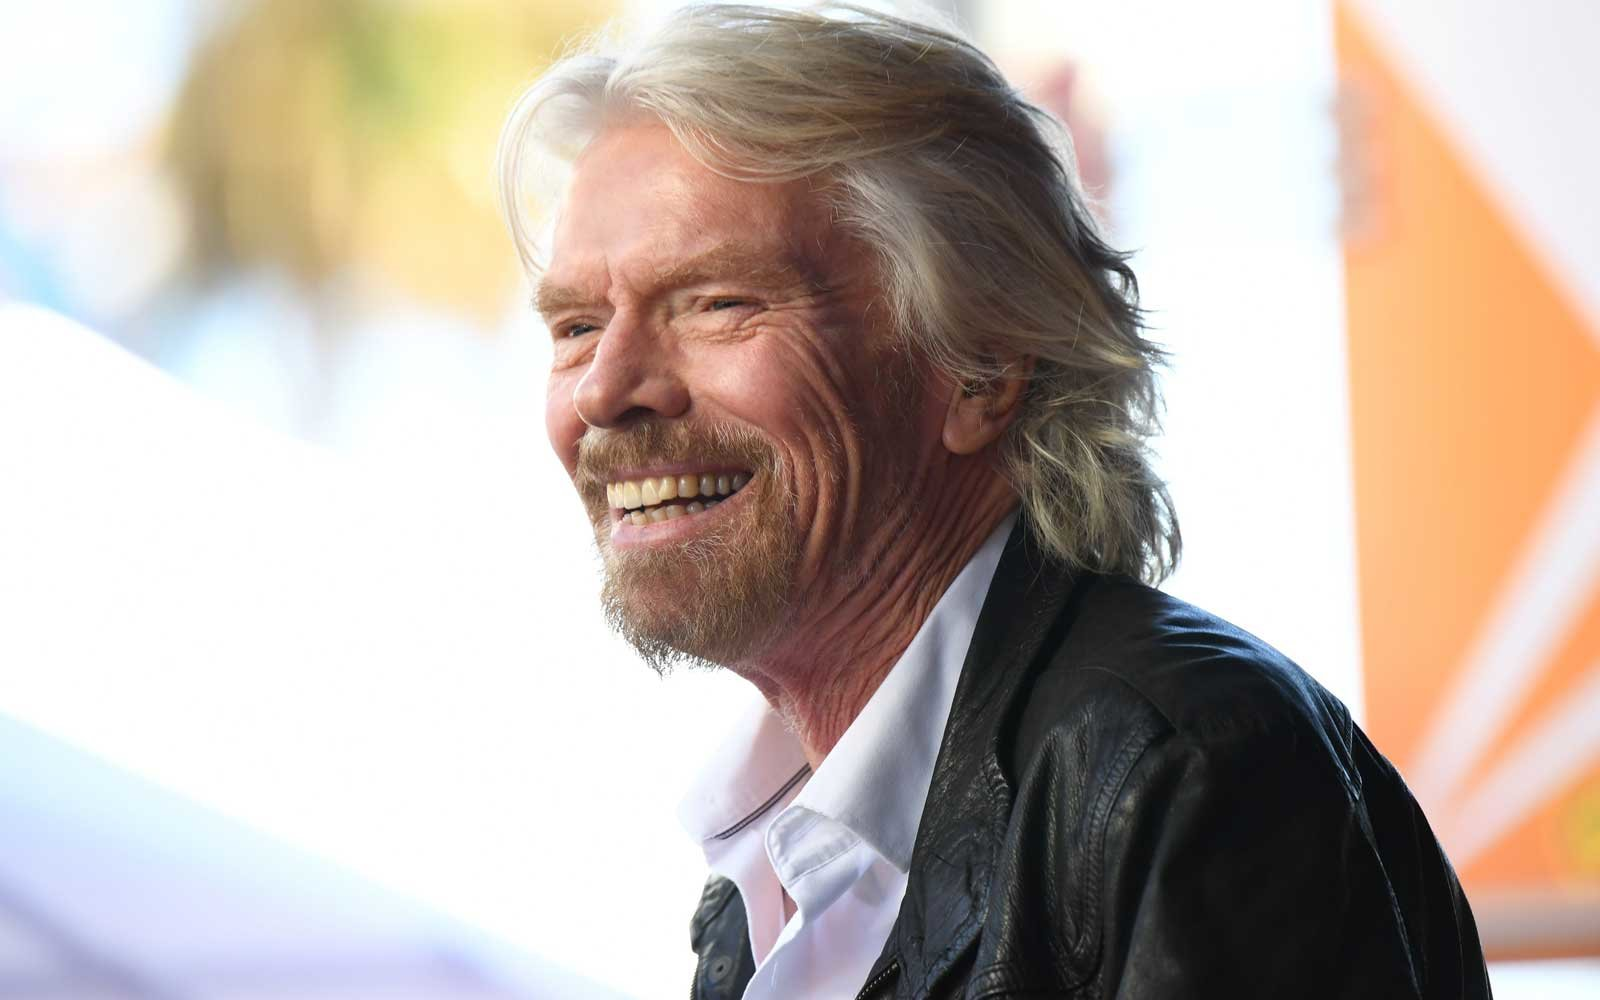 Richard Branson's New High-speed Trains Will Let You Visit